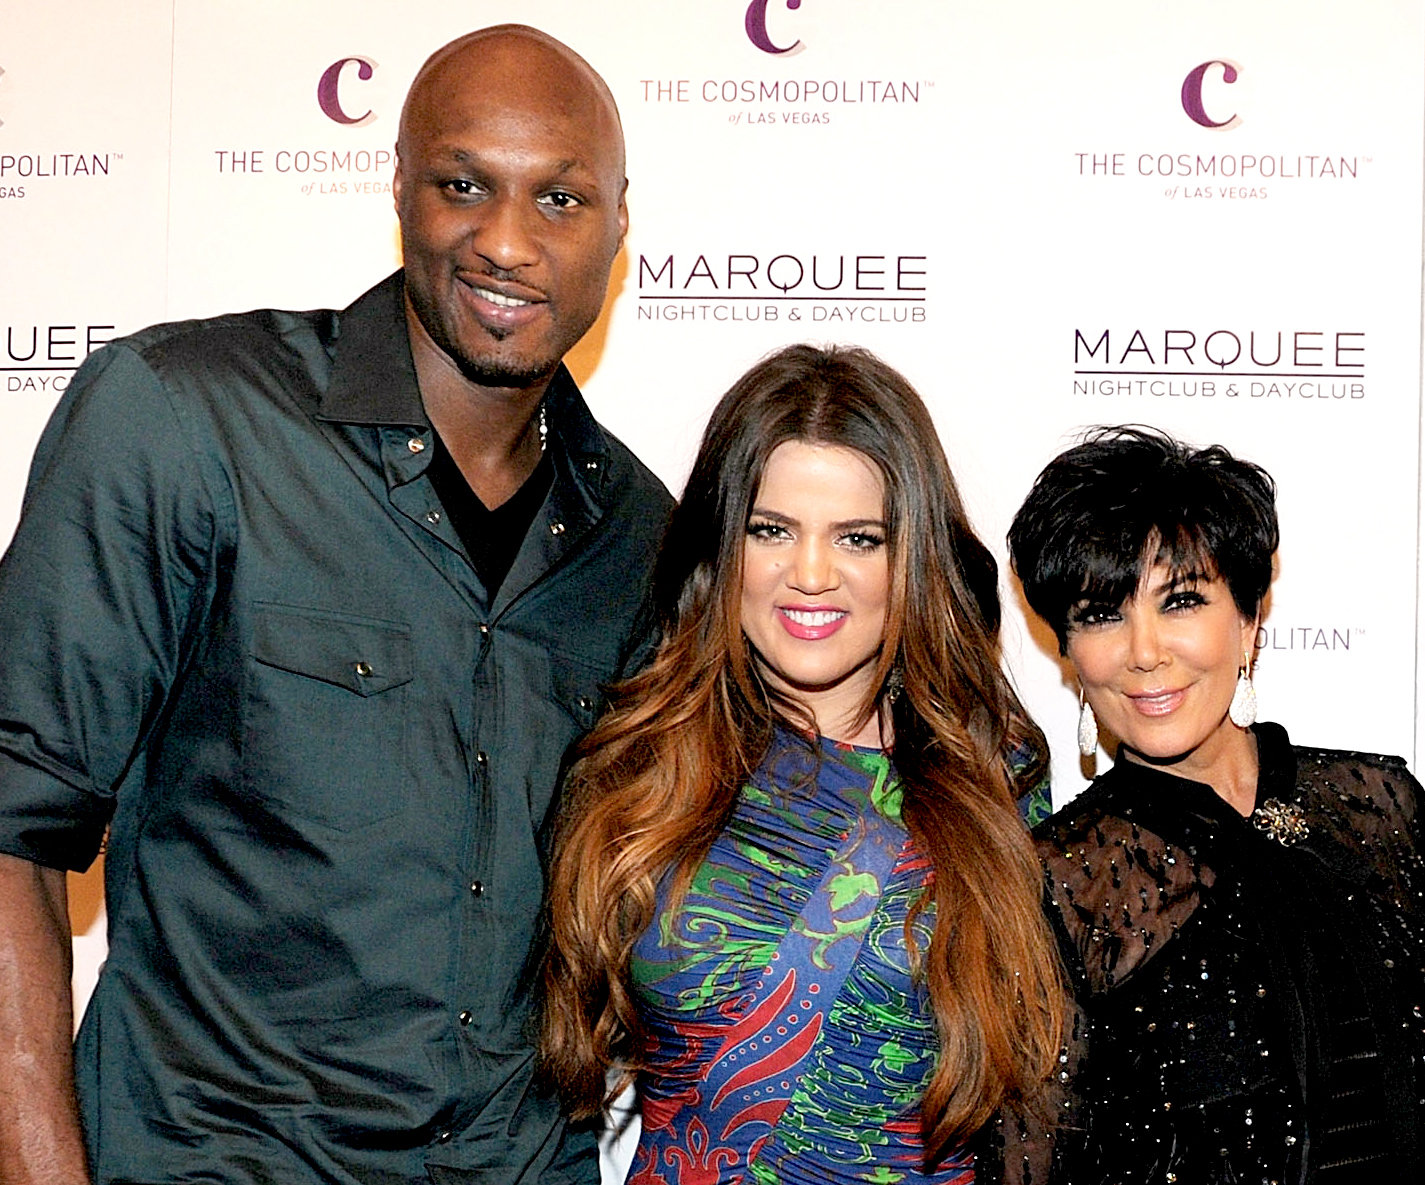 Lamar Odom Confesses He Threatened to Kill Khloe Kardashian